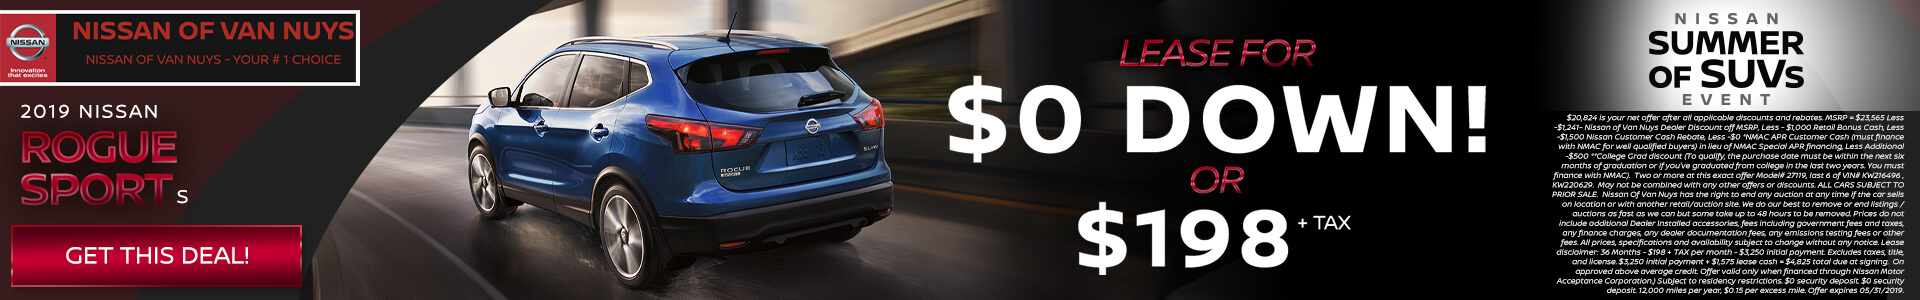 Nissan Rogue Sport $20,824 Purchase/Lease